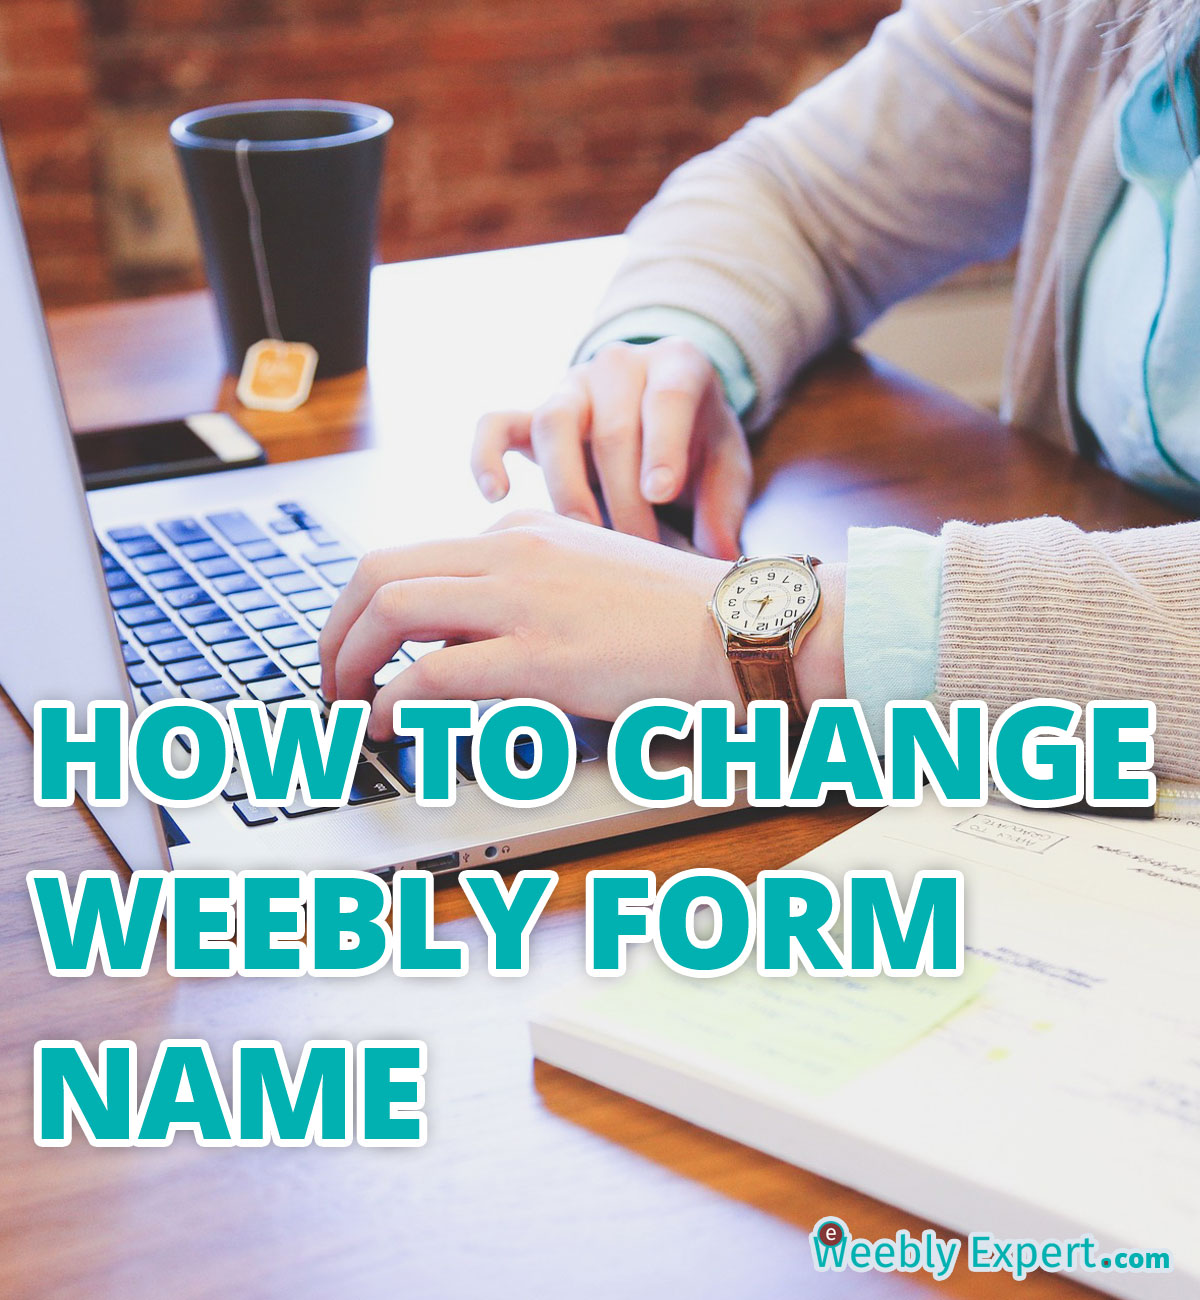 how to change weebly form name